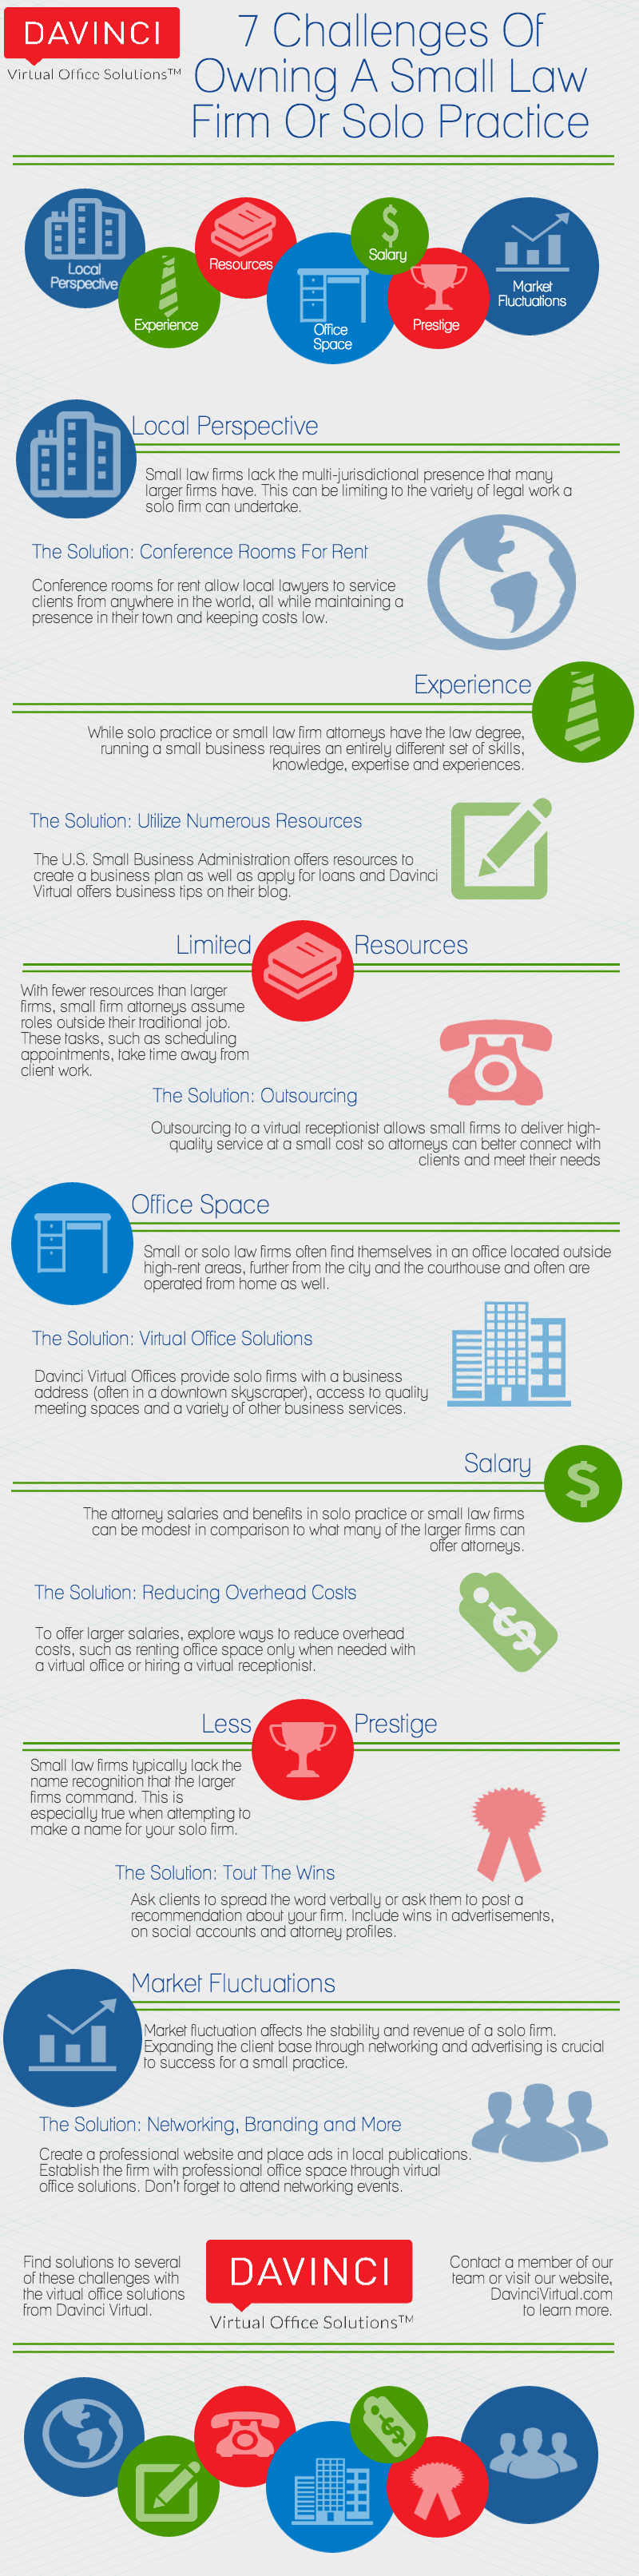 The 7 Challenges Of Owning A Small Law Firm Or Solo Practice [Infographic] |Davinci Virtual